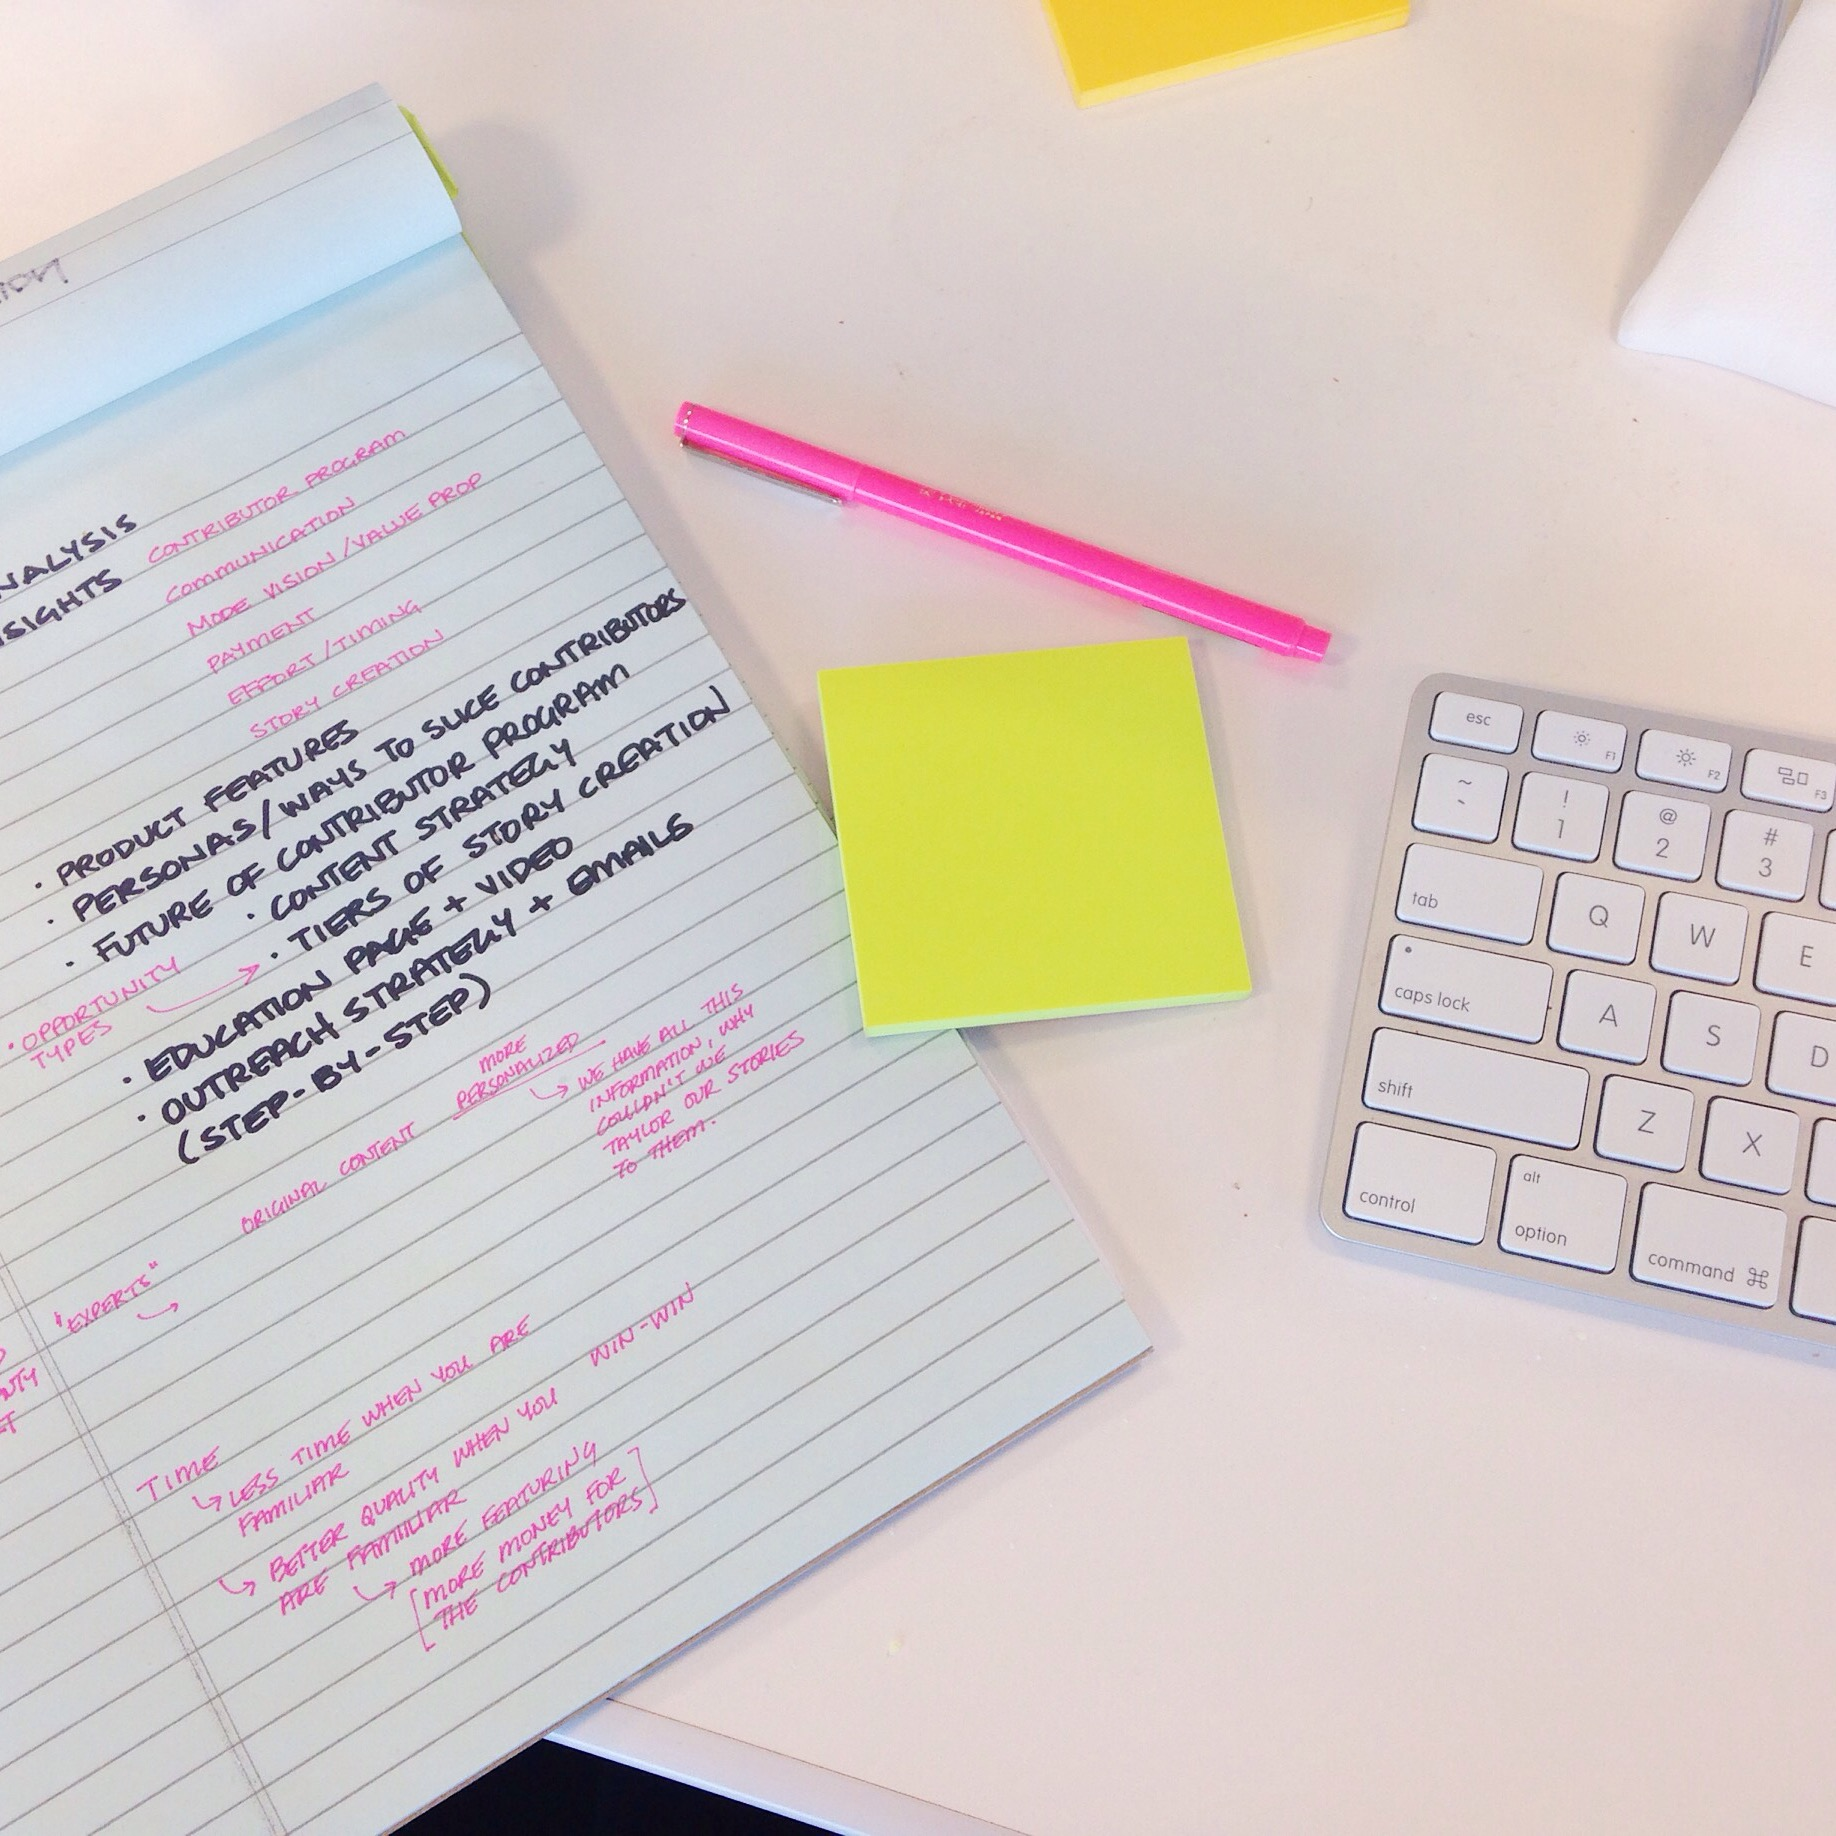 Notepad with post it note and keyboard.